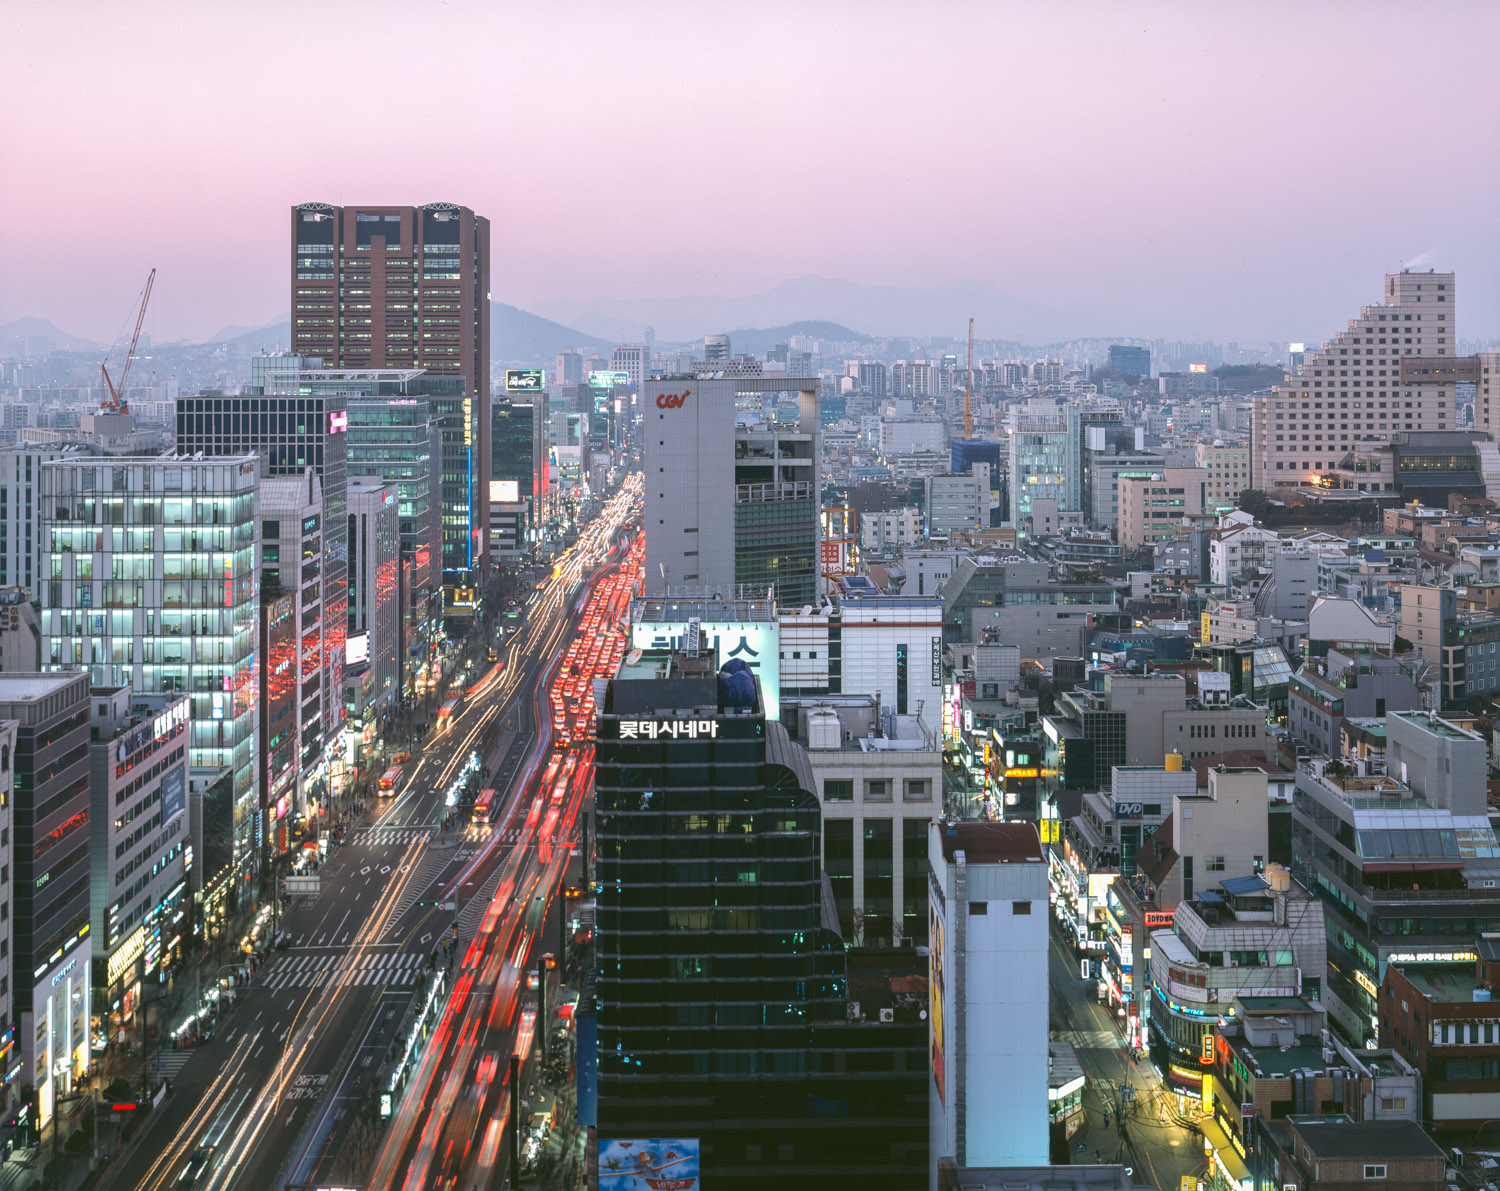 Gangnam main shopping area